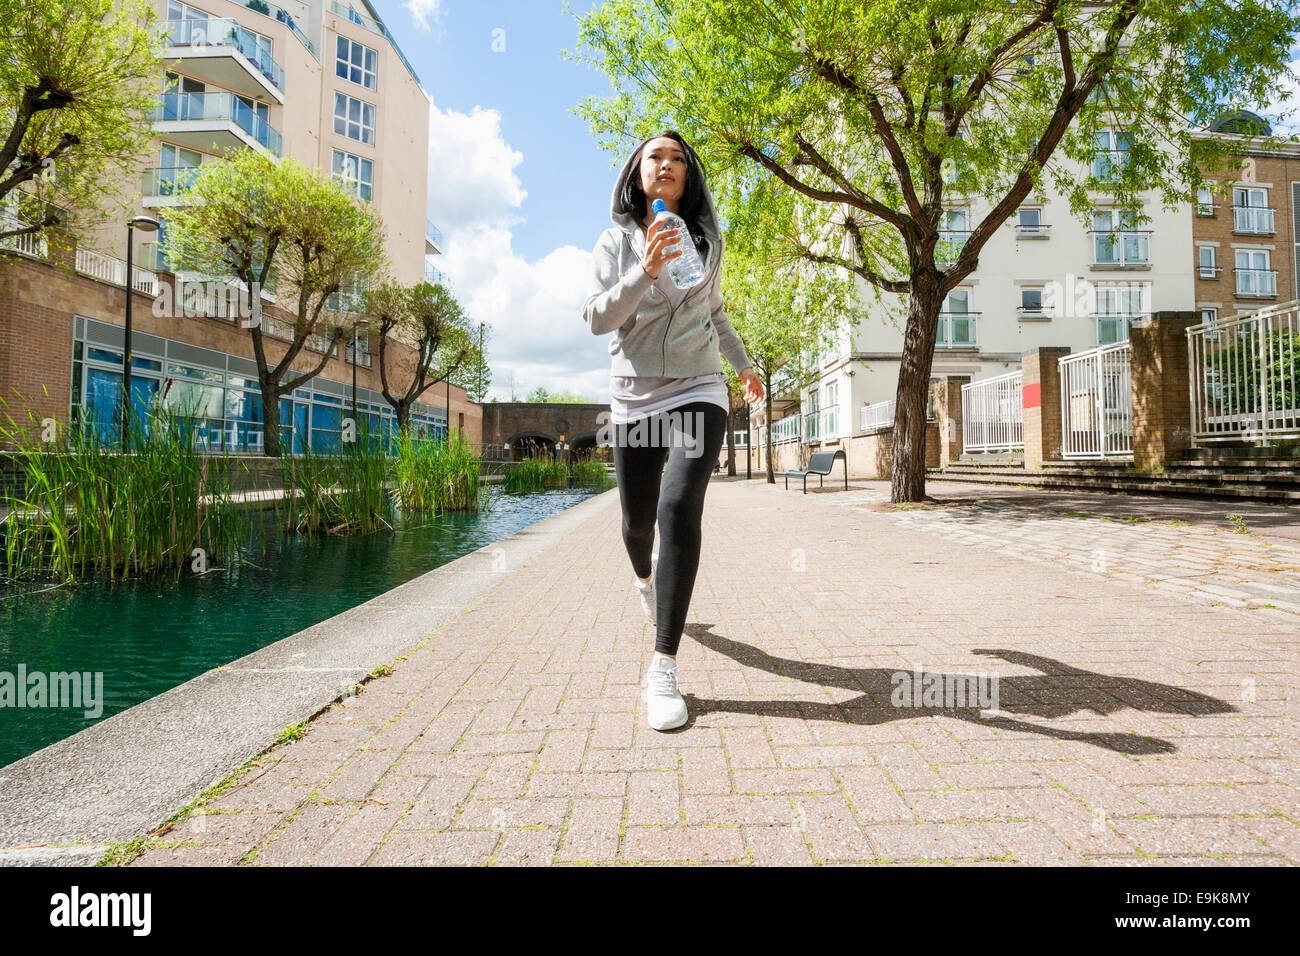 Full length of fit young woman jogging by canal against buildings - Stock Image